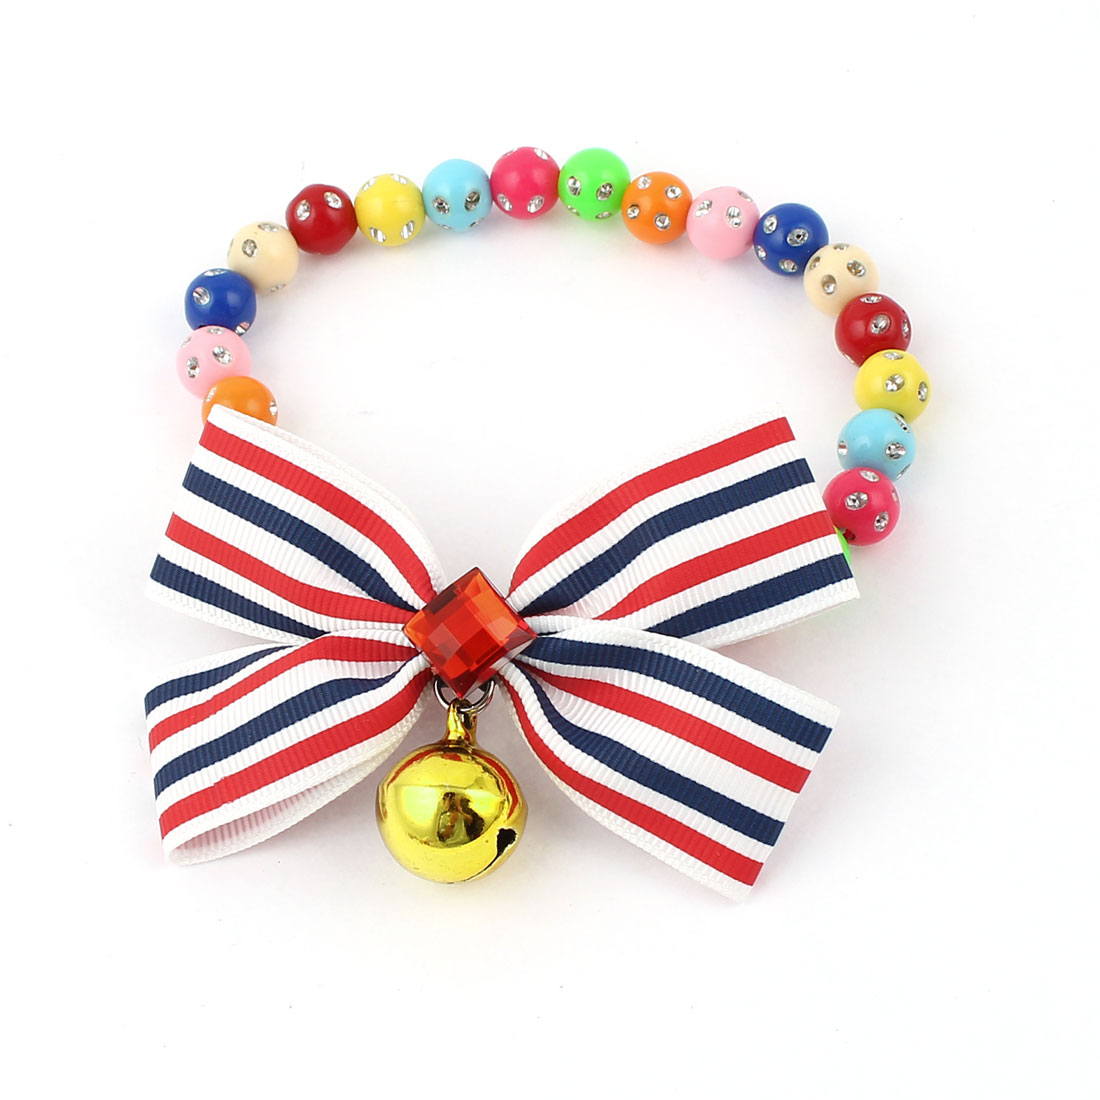 Faux Crystal Bowtie Accent Pet Dog Plastic Beads Collar Necklace Assorted Color S